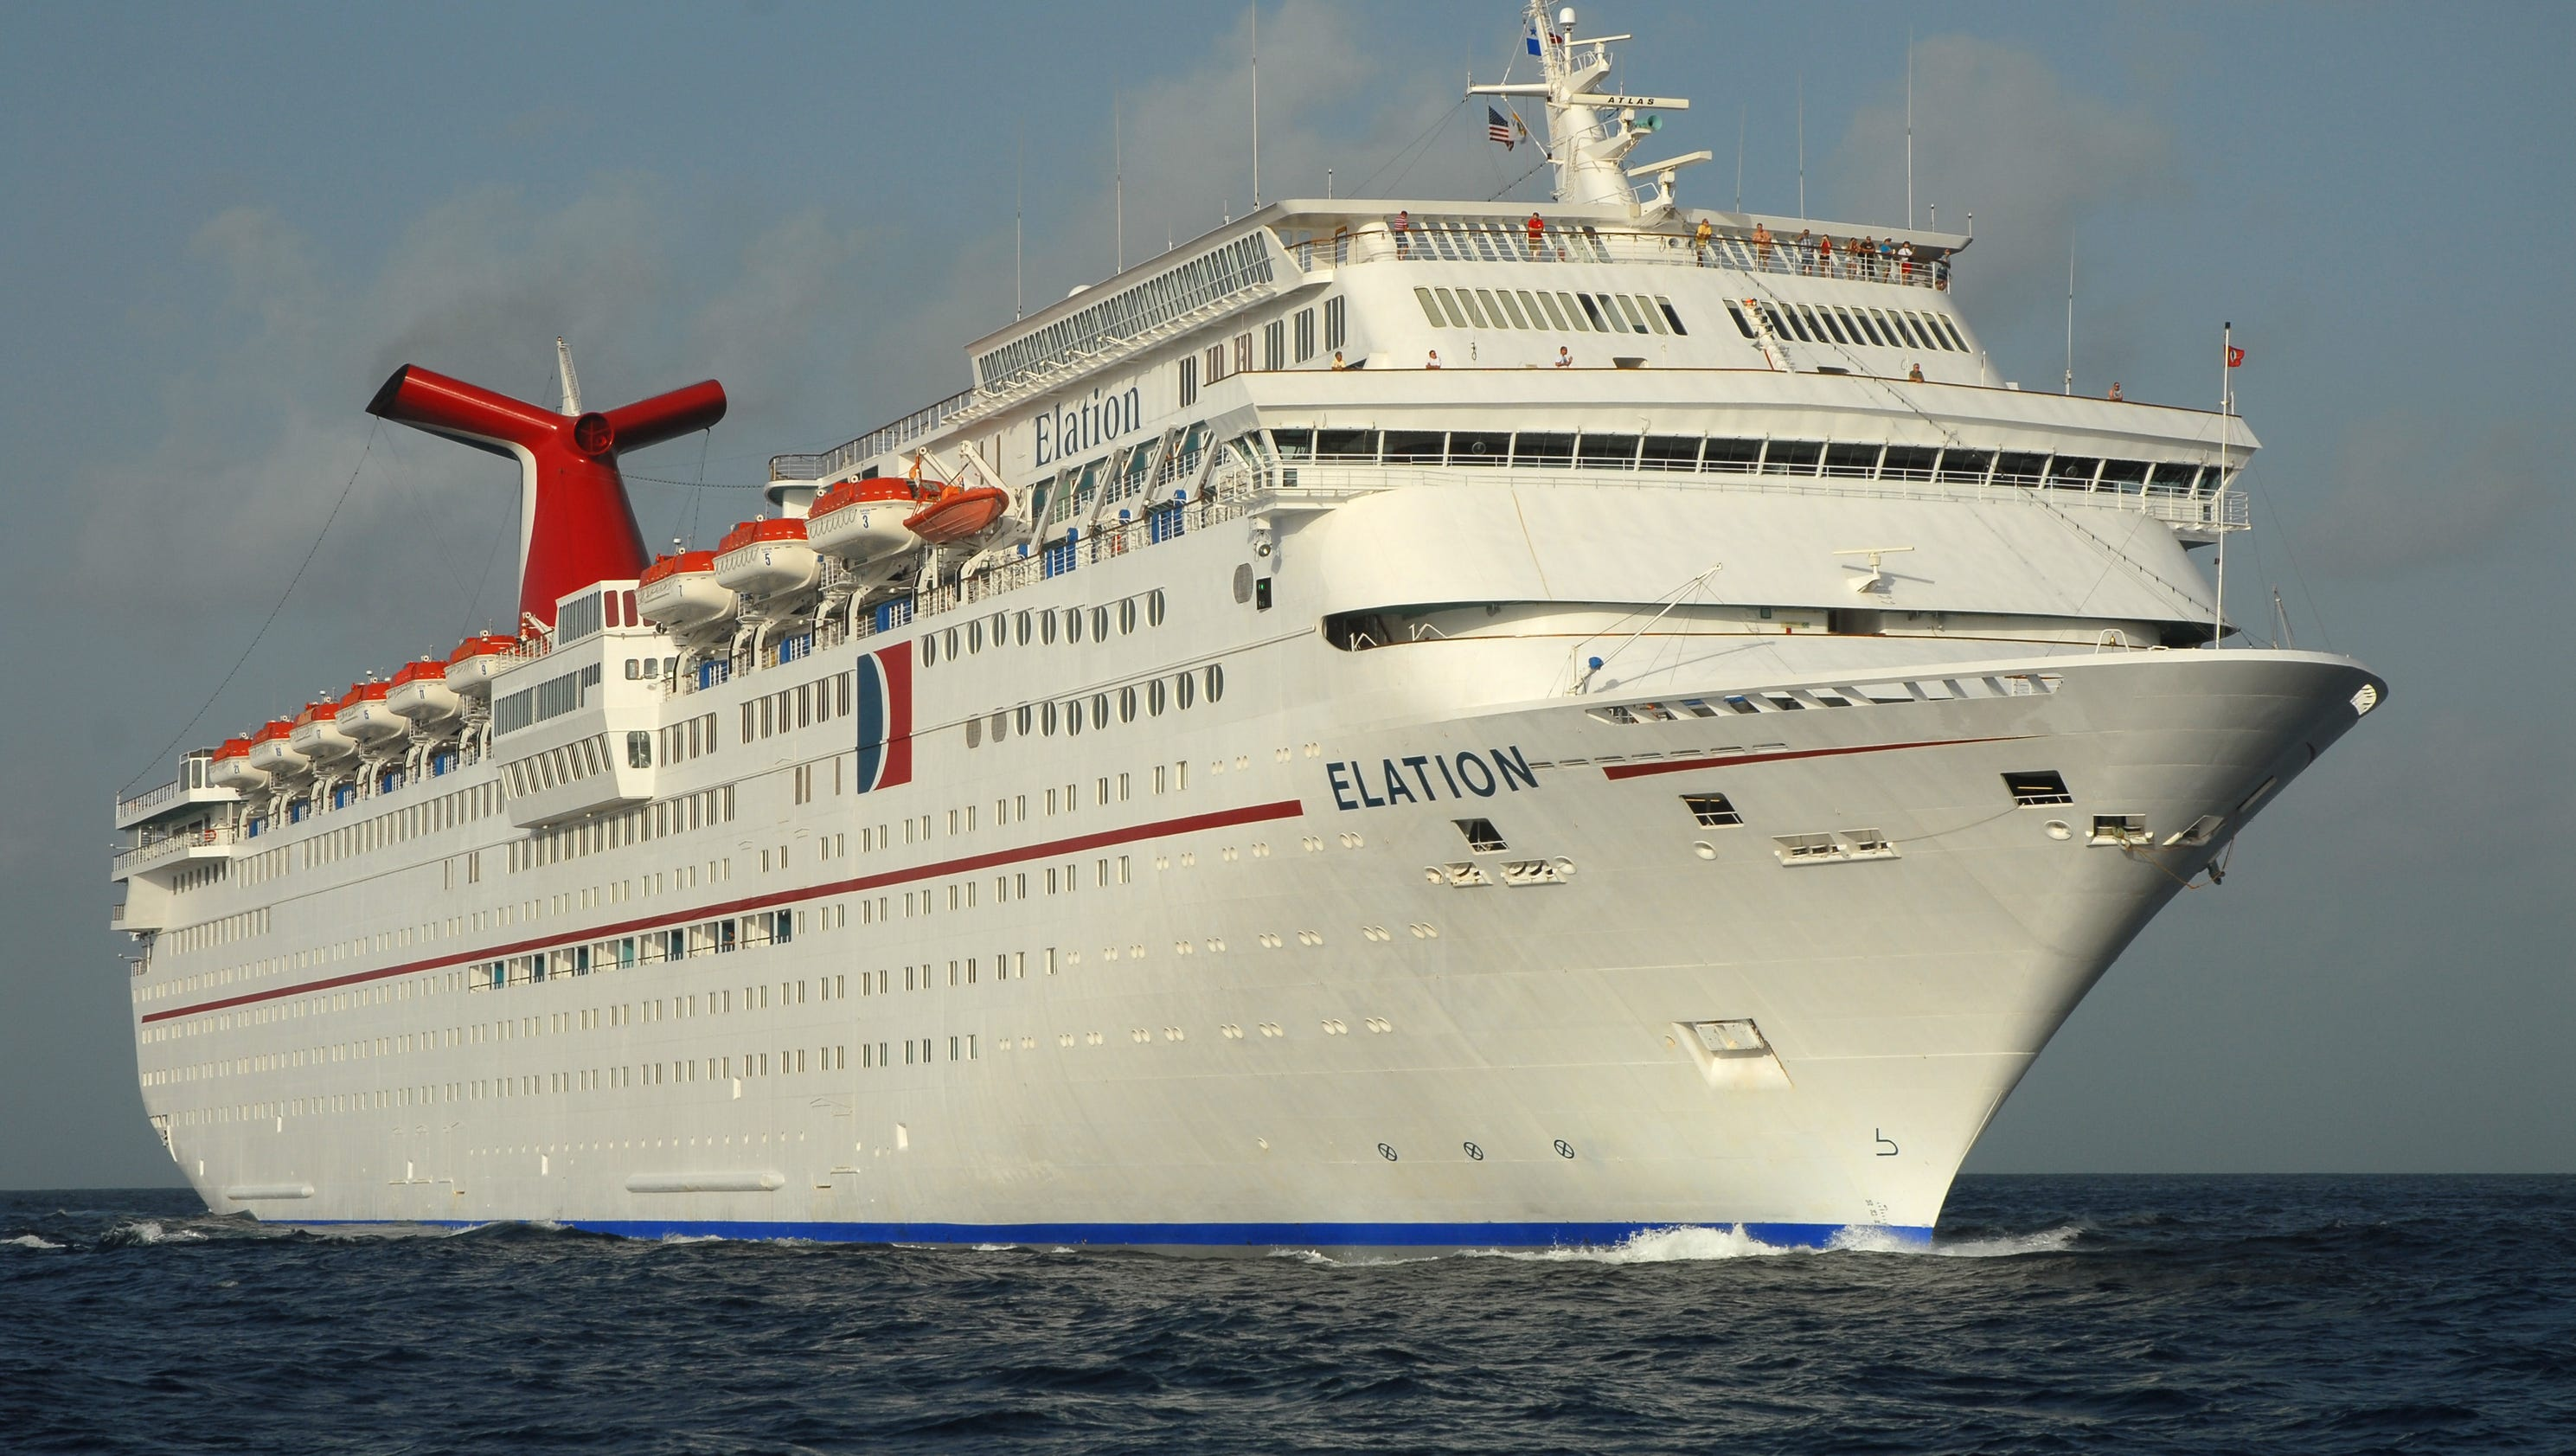 Explore The Beauty Of Caribbean: Carnival Elation Is The Latest Carnival Ship To Undergo